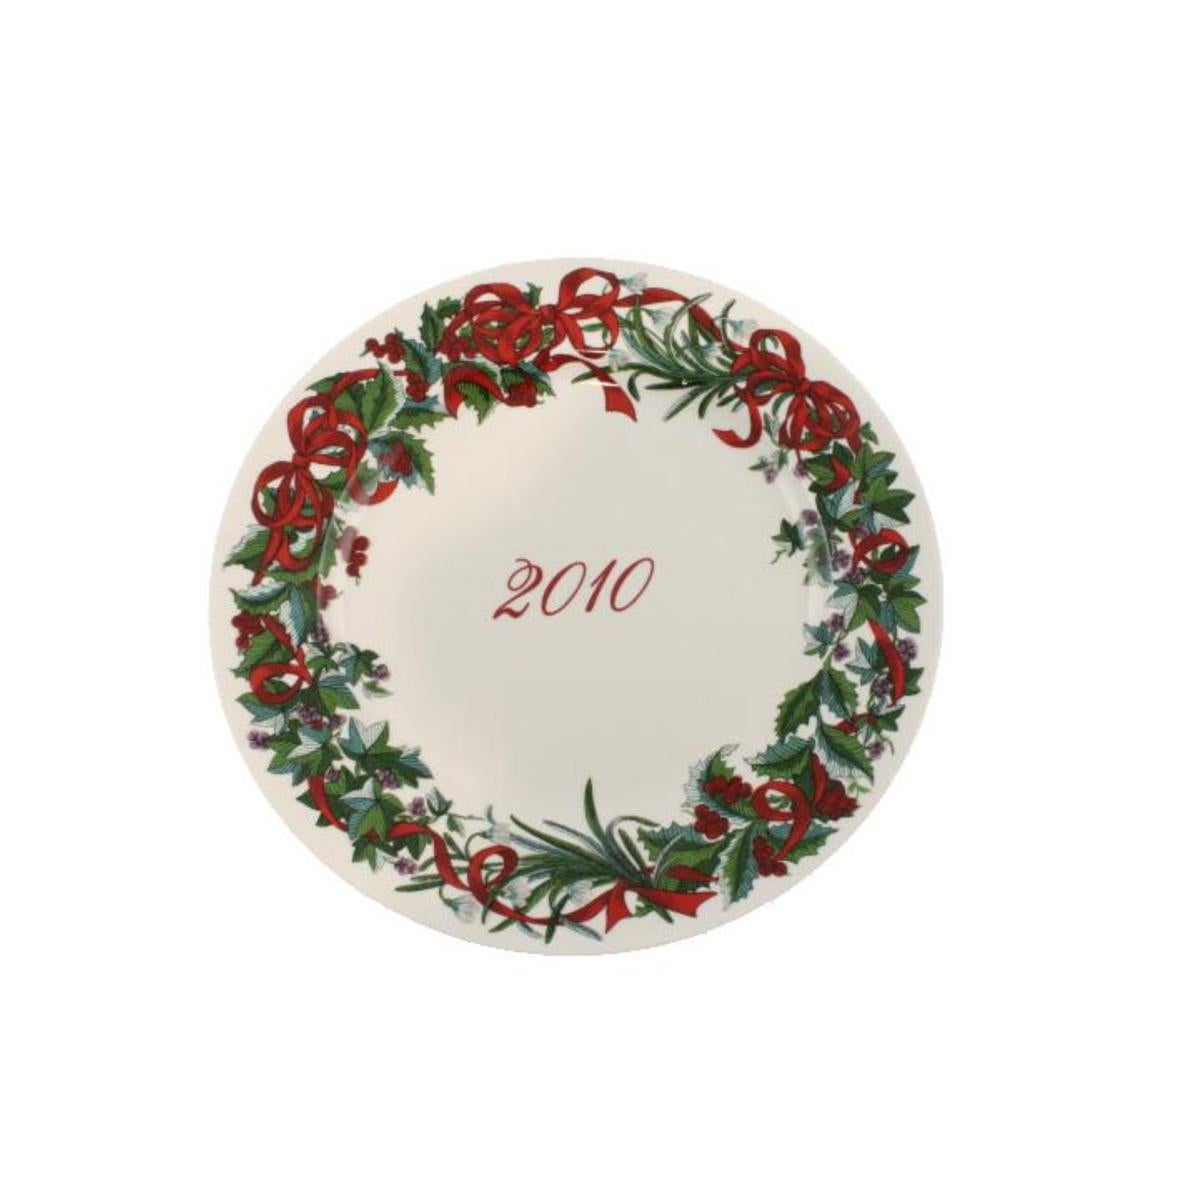 Martha Stewart Holiday Garden 2010 Plate Porcelain Dinnerware - Free Shipping On Orders Over $45 - Overstock - 19867665  sc 1 st  Overstock.com & Martha Stewart Holiday Garden 2010 Plate Porcelain Dinnerware - Free ...